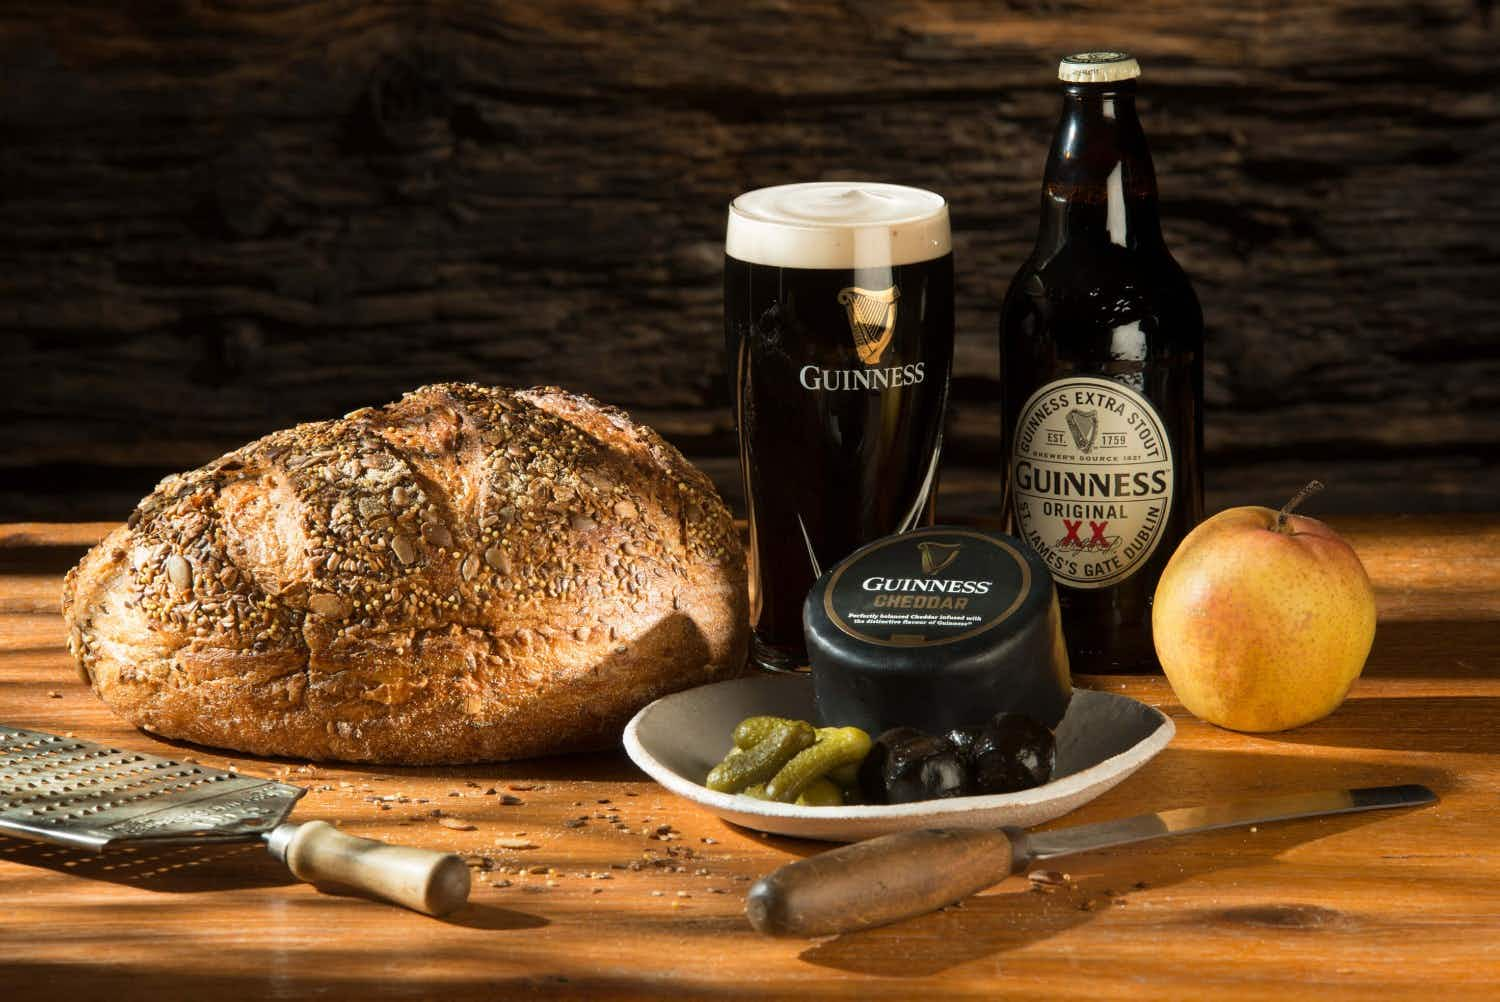 Are you a fan of Irish stout? Perhaps you'll like the new Guinness-infused cheese